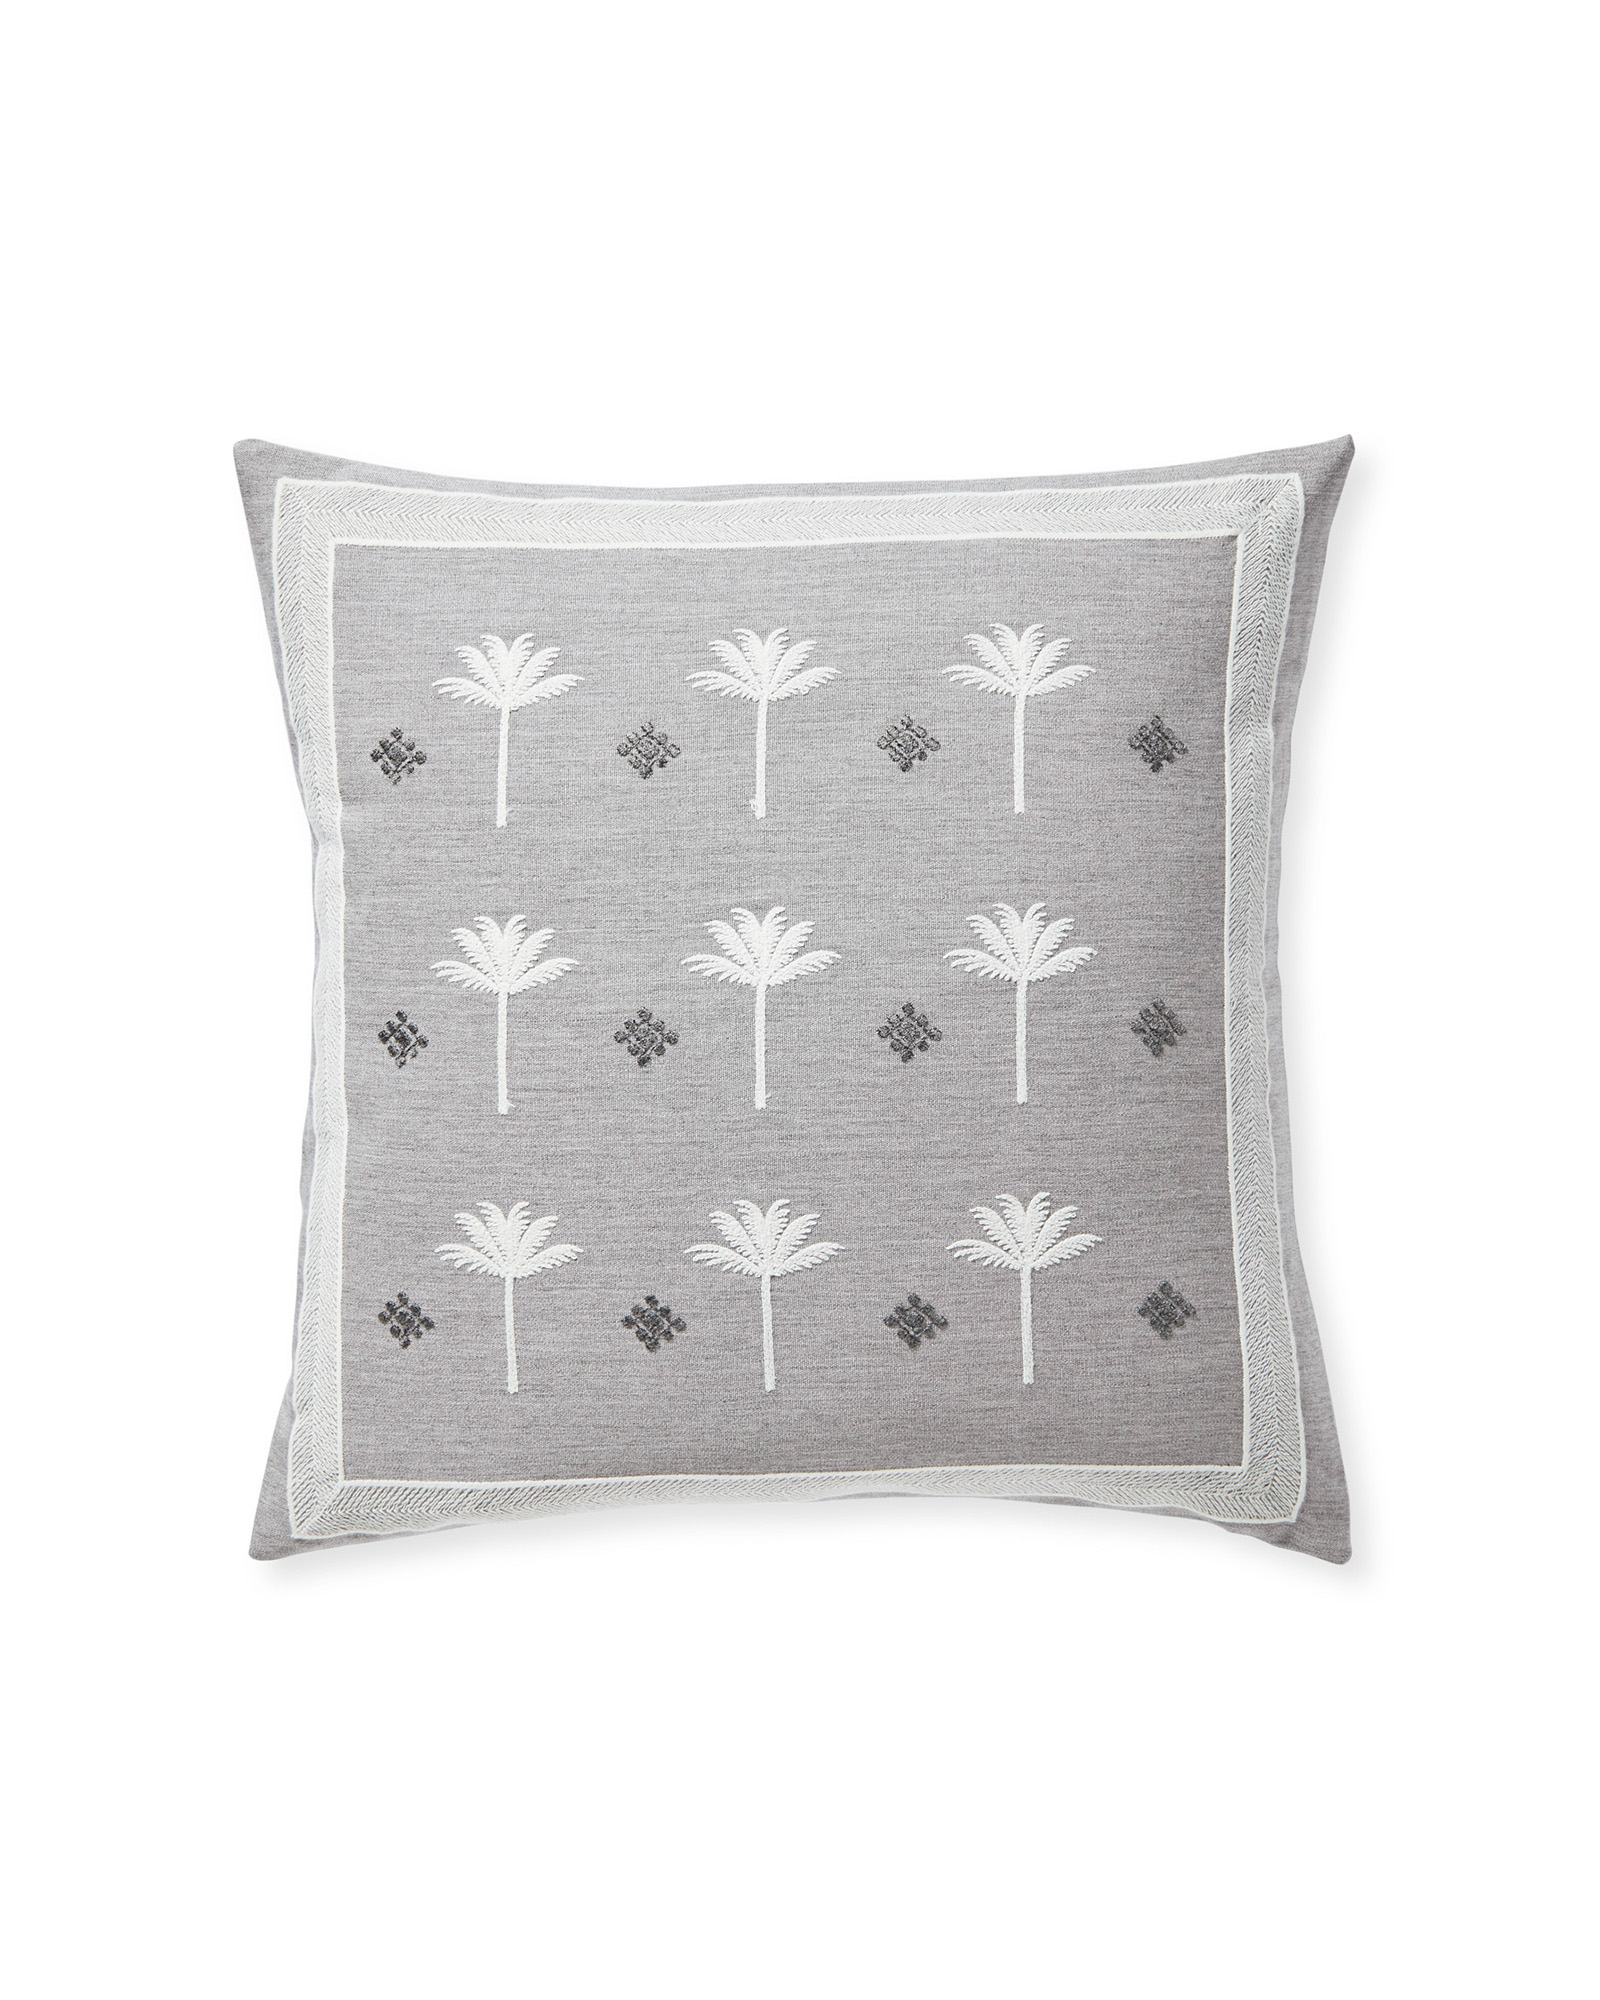 Sunbrella® Veracruz Pillow Cover, Fog/Smoke